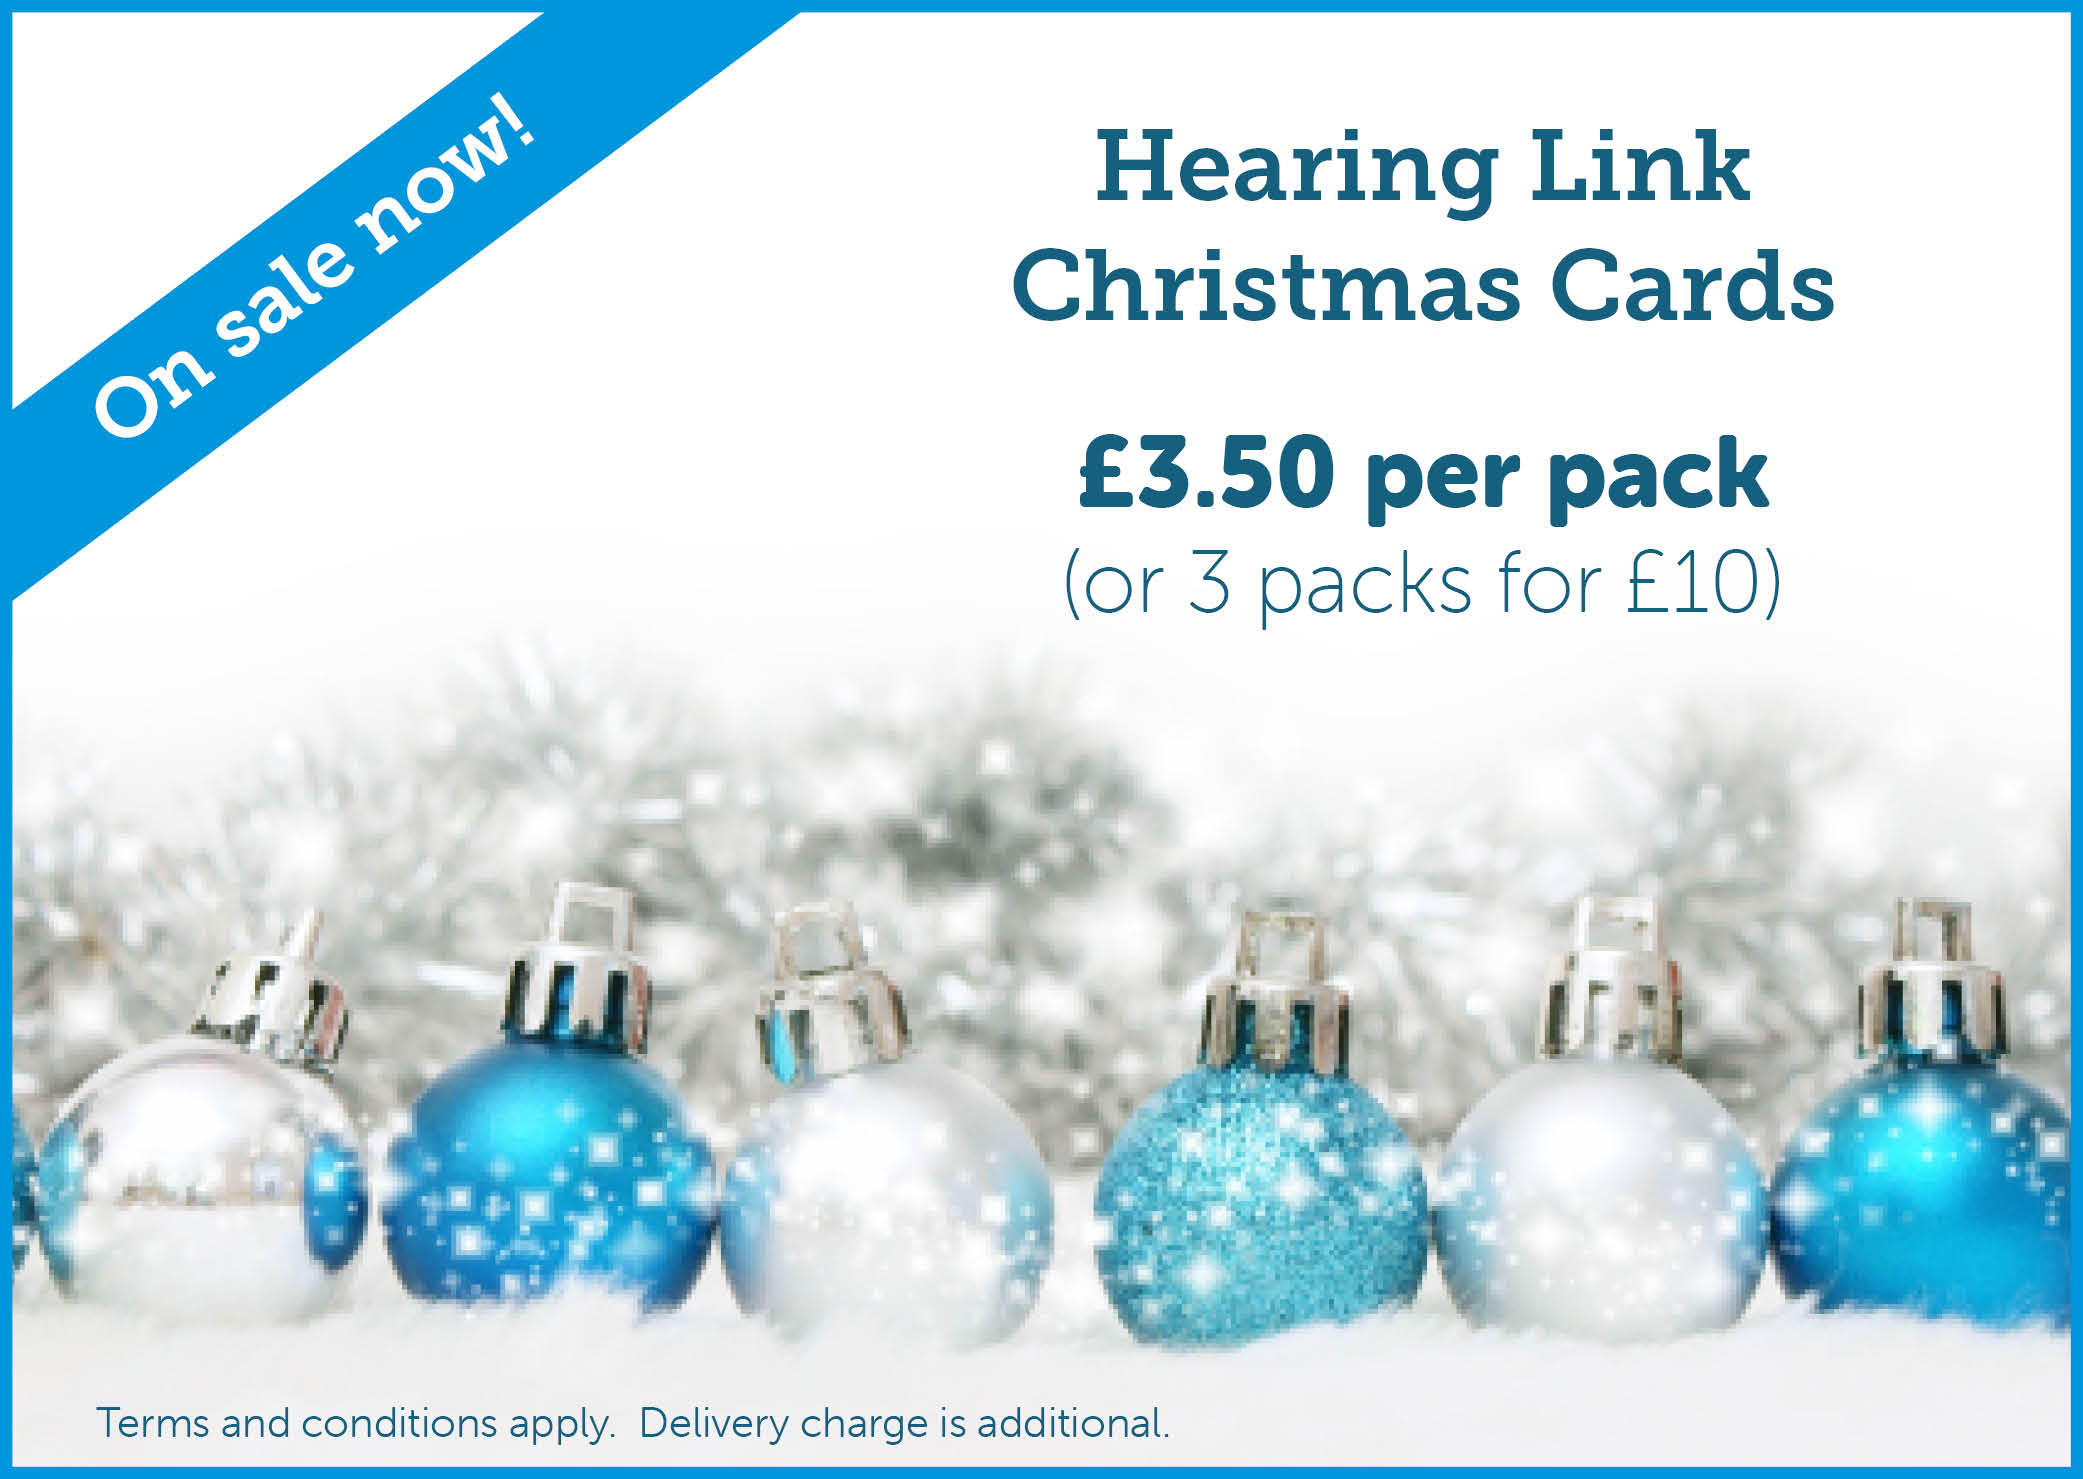 Hearing Link Christmas Card